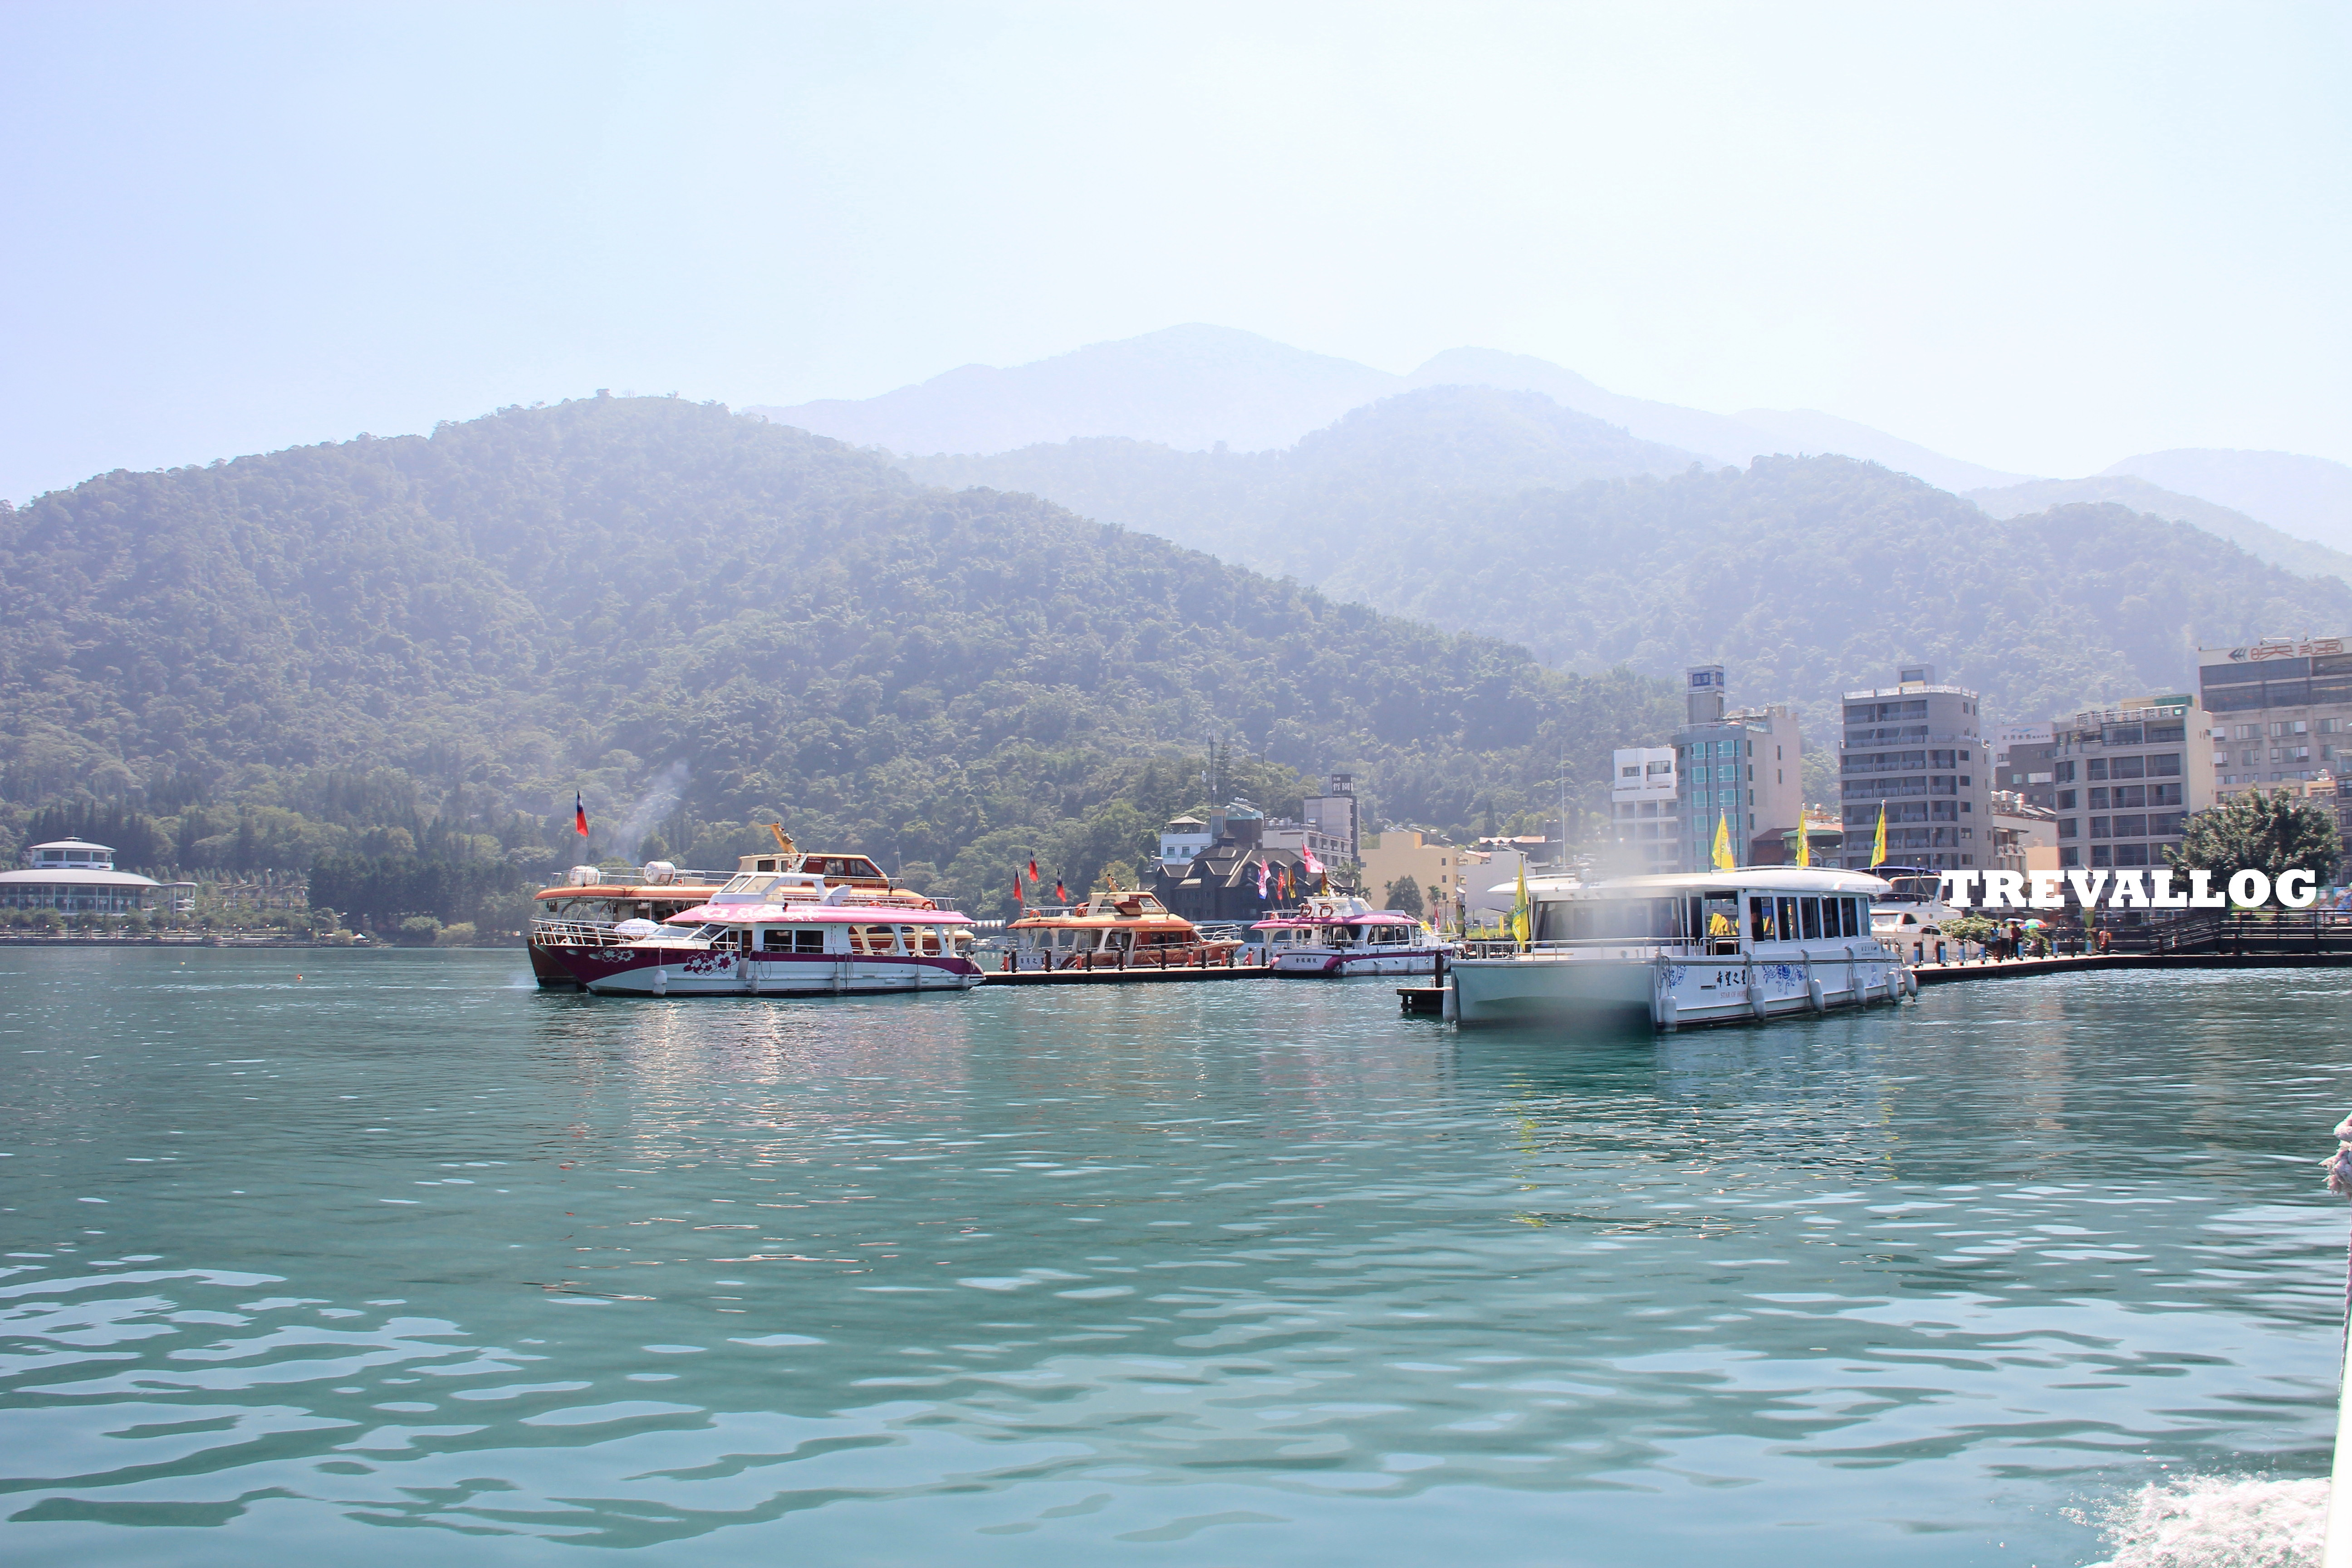 Approaching Ita Thao, at Sun Moon Lake, Taiwan